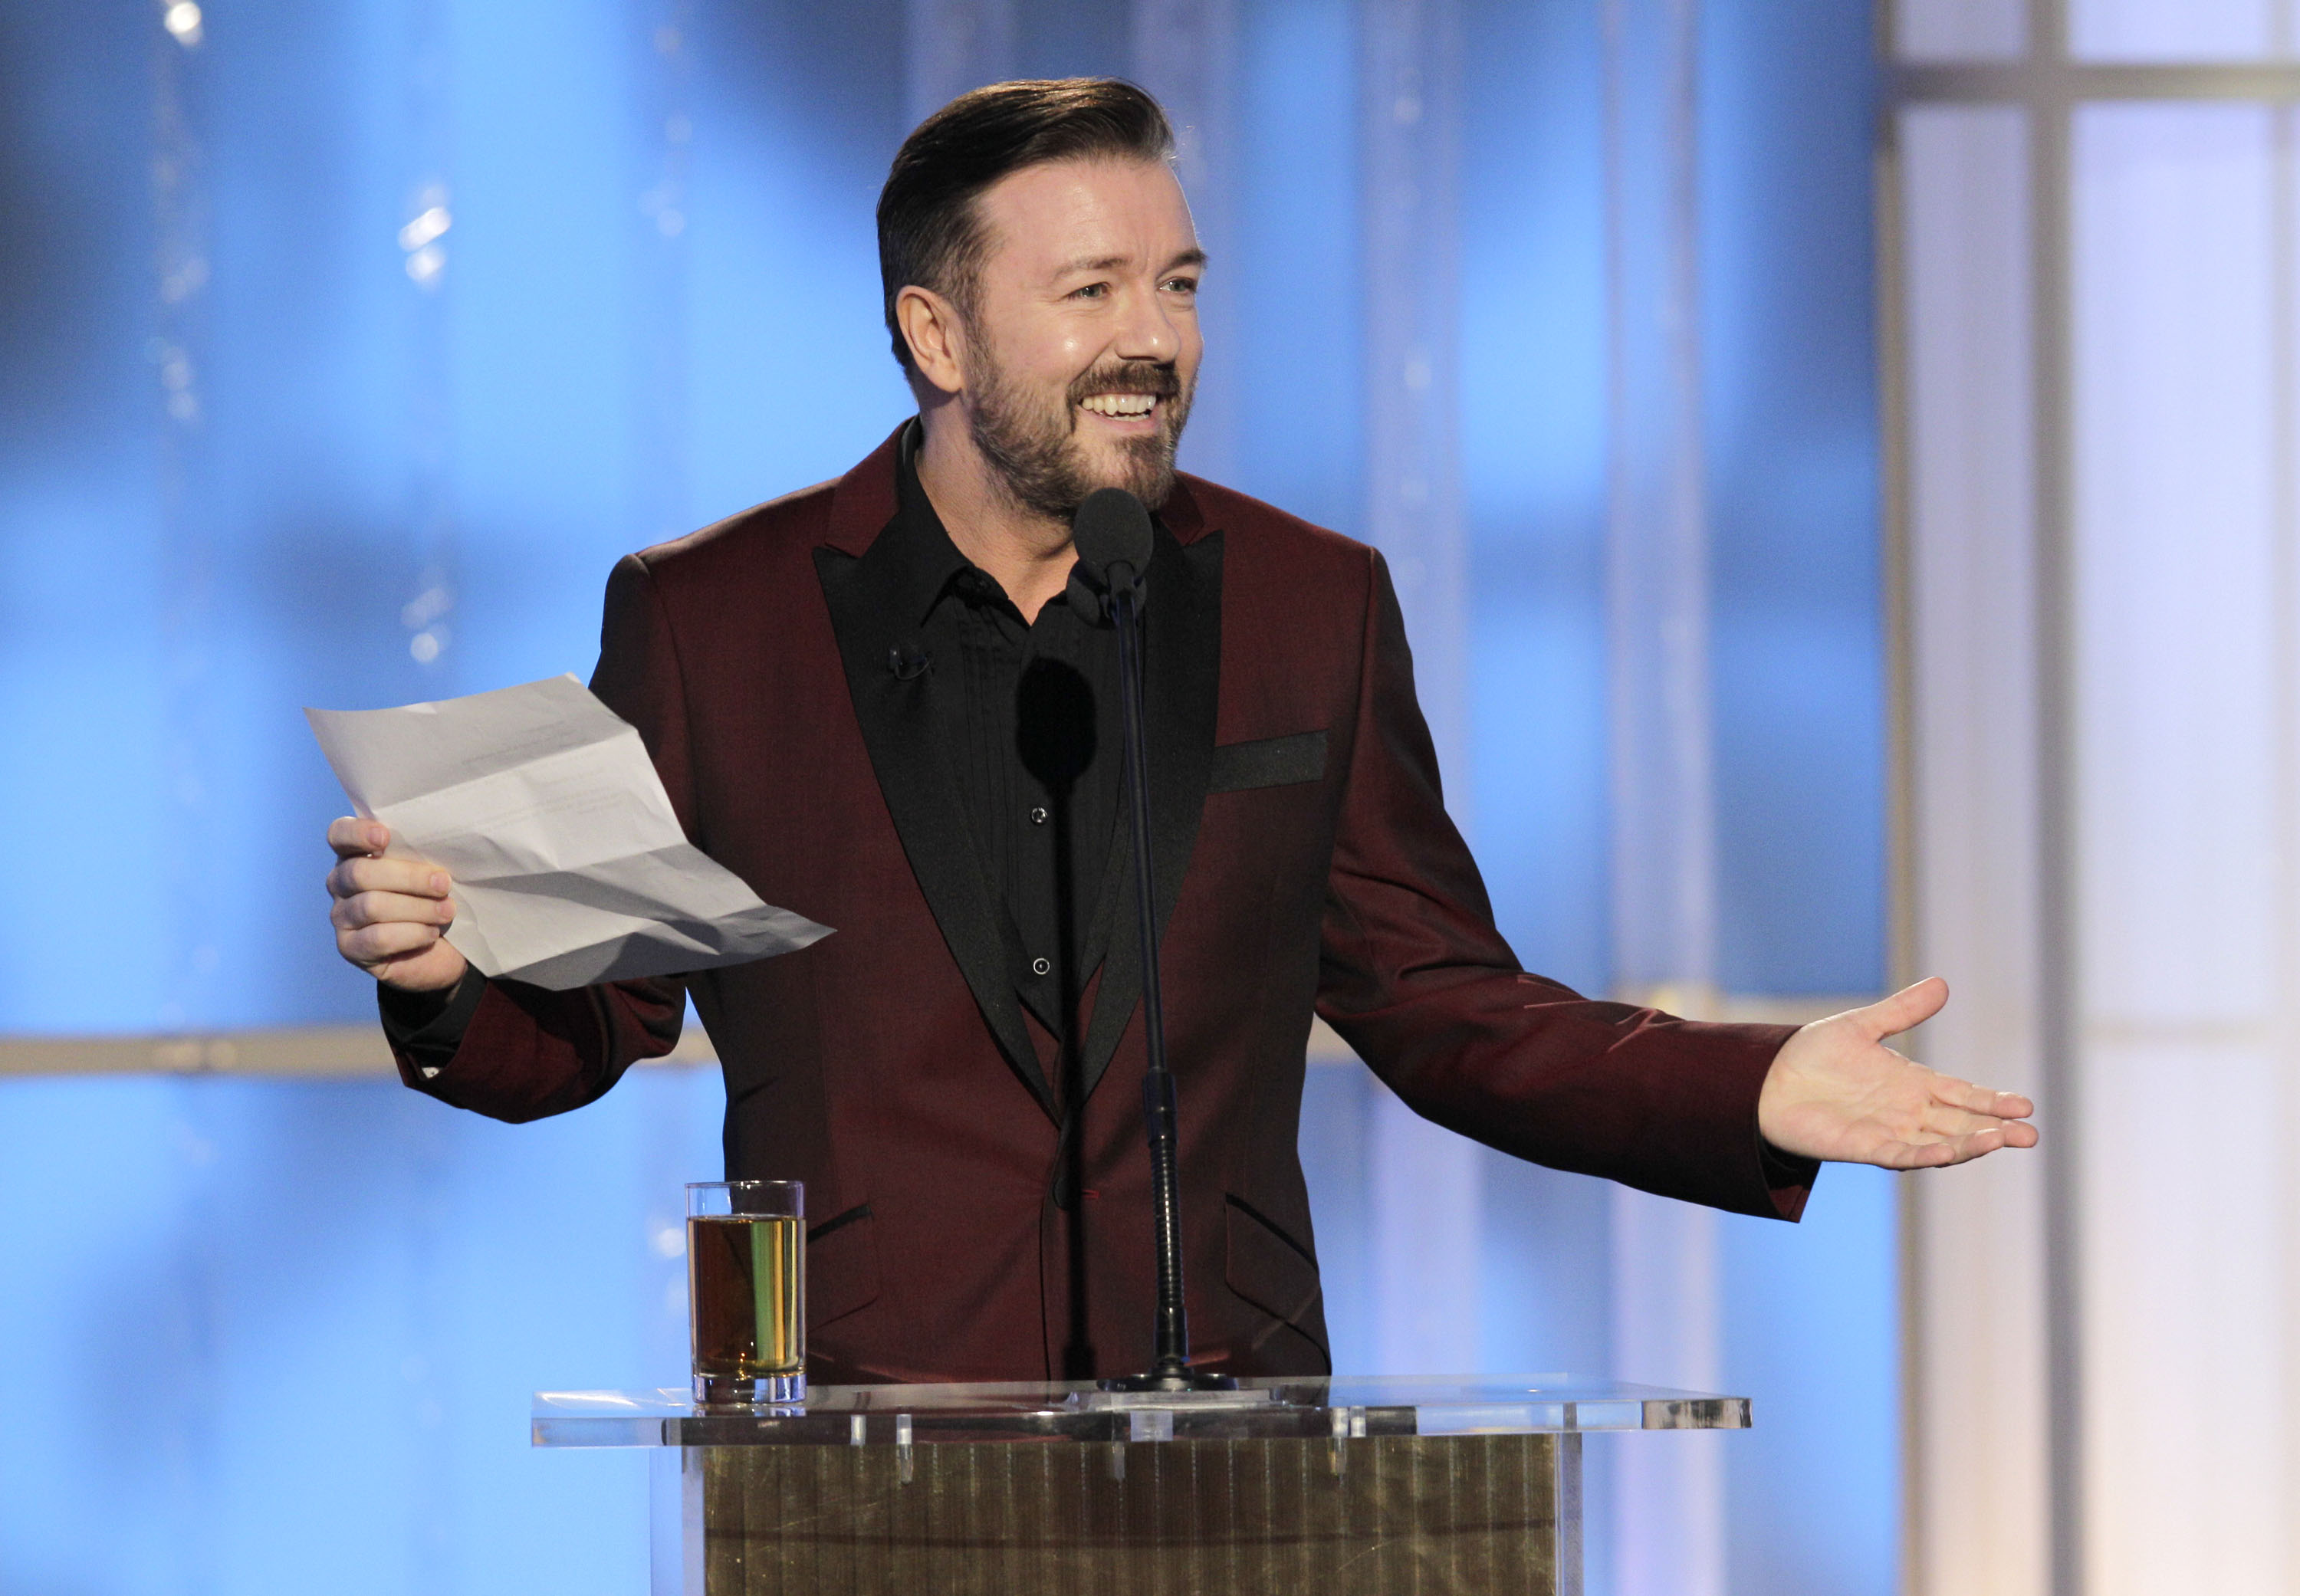 Golden Globes: Ricky Gervais to host fifth time